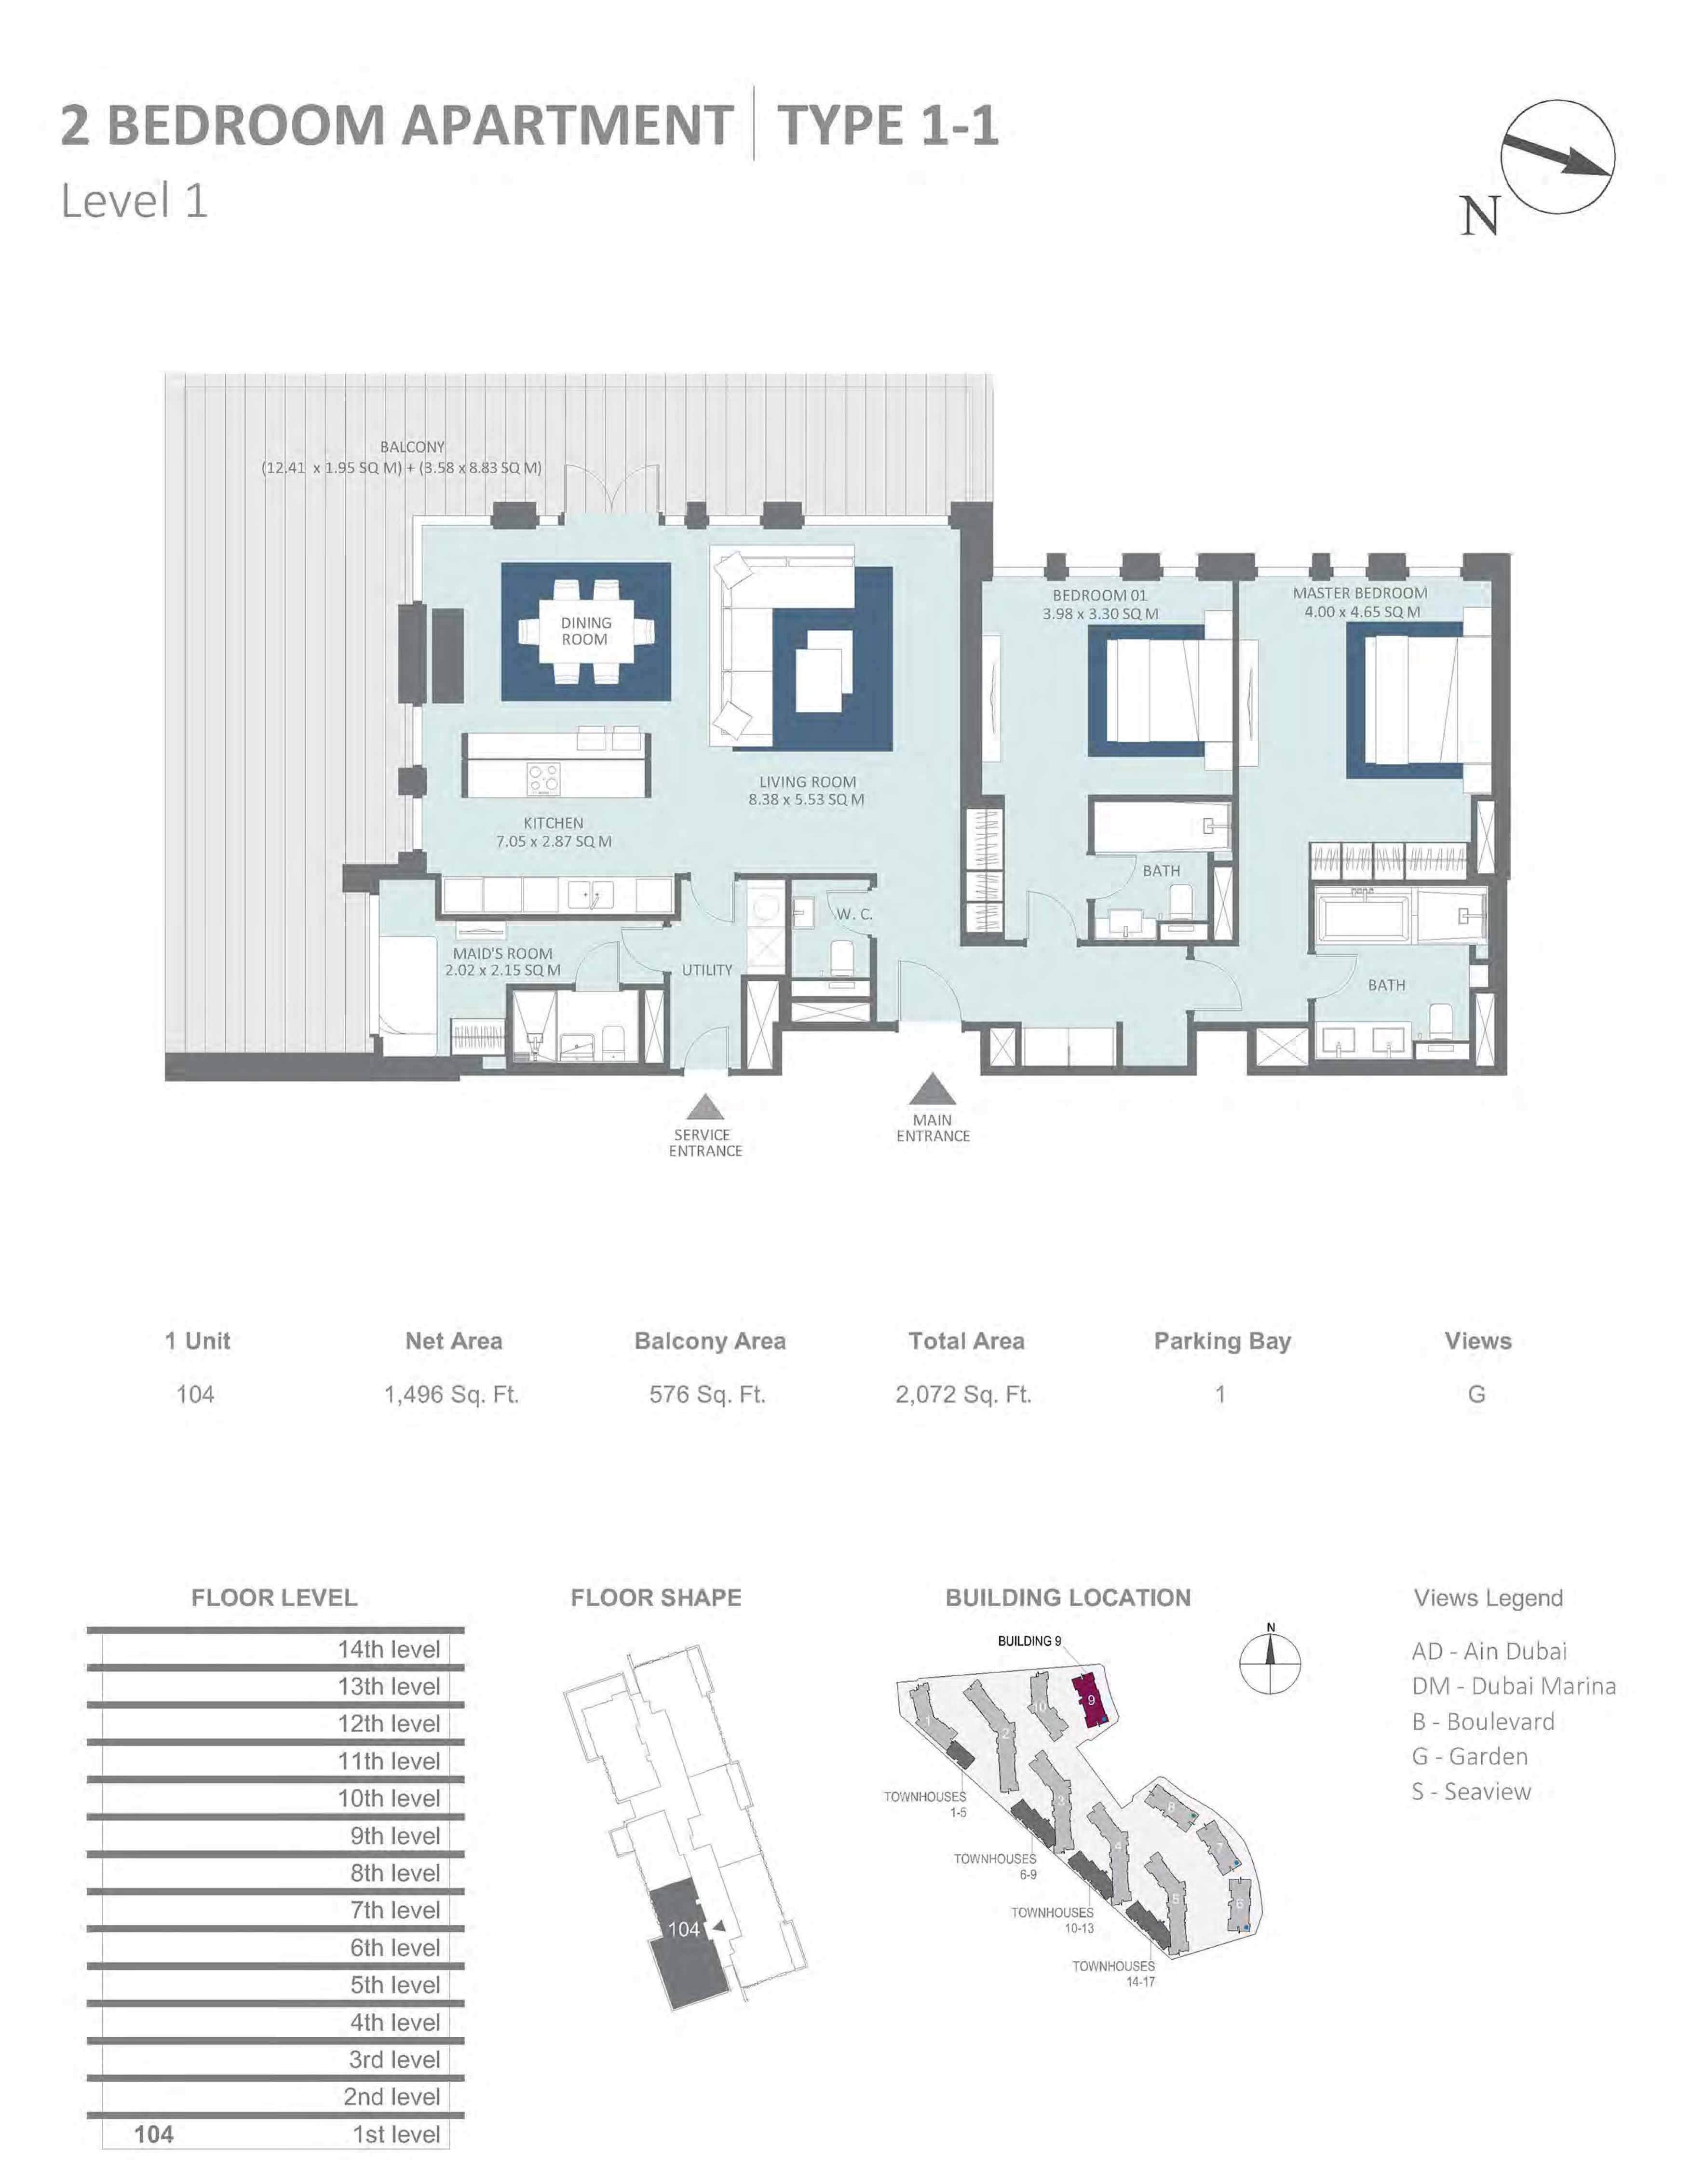 Building 9 - 2 Bedroom Type 1-1, Level 1 Size 2072  sq. ft.